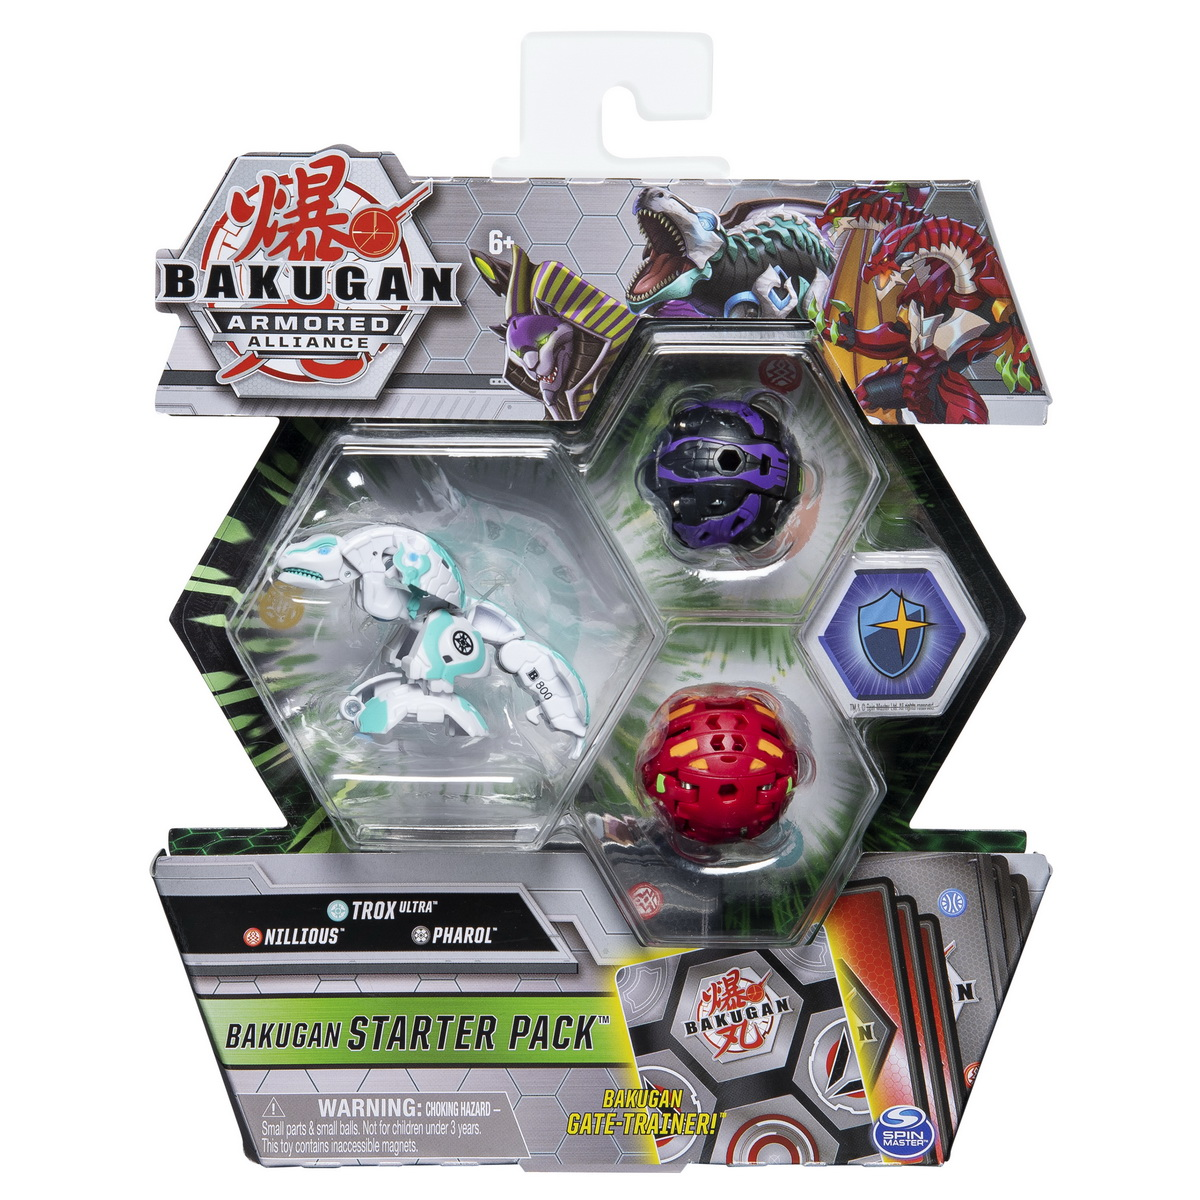 Bakugan S2 Pachet De Start Nillious Pharol Si Trox Ultra